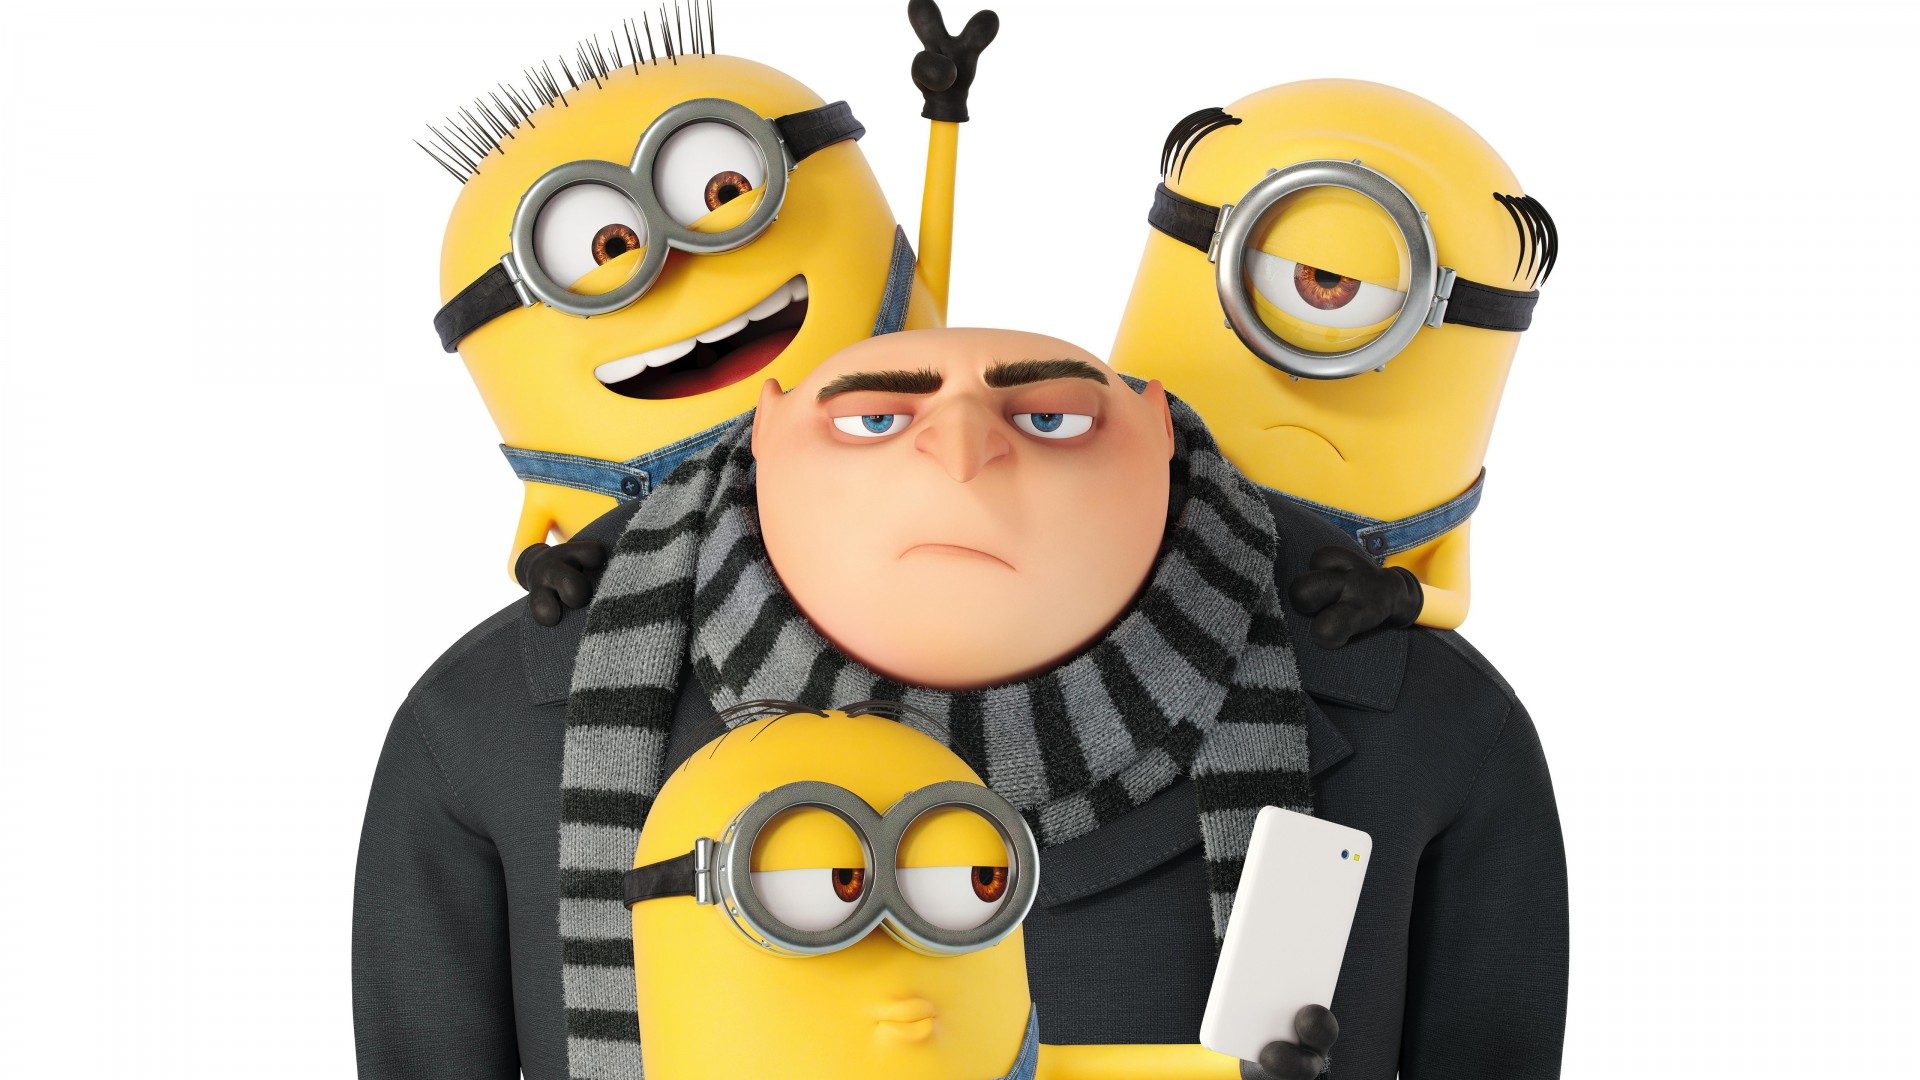 Expendables Wallpaper Iphone Gru Minions Despicable Me 3 5k Wallpapers Hd Wallpapers